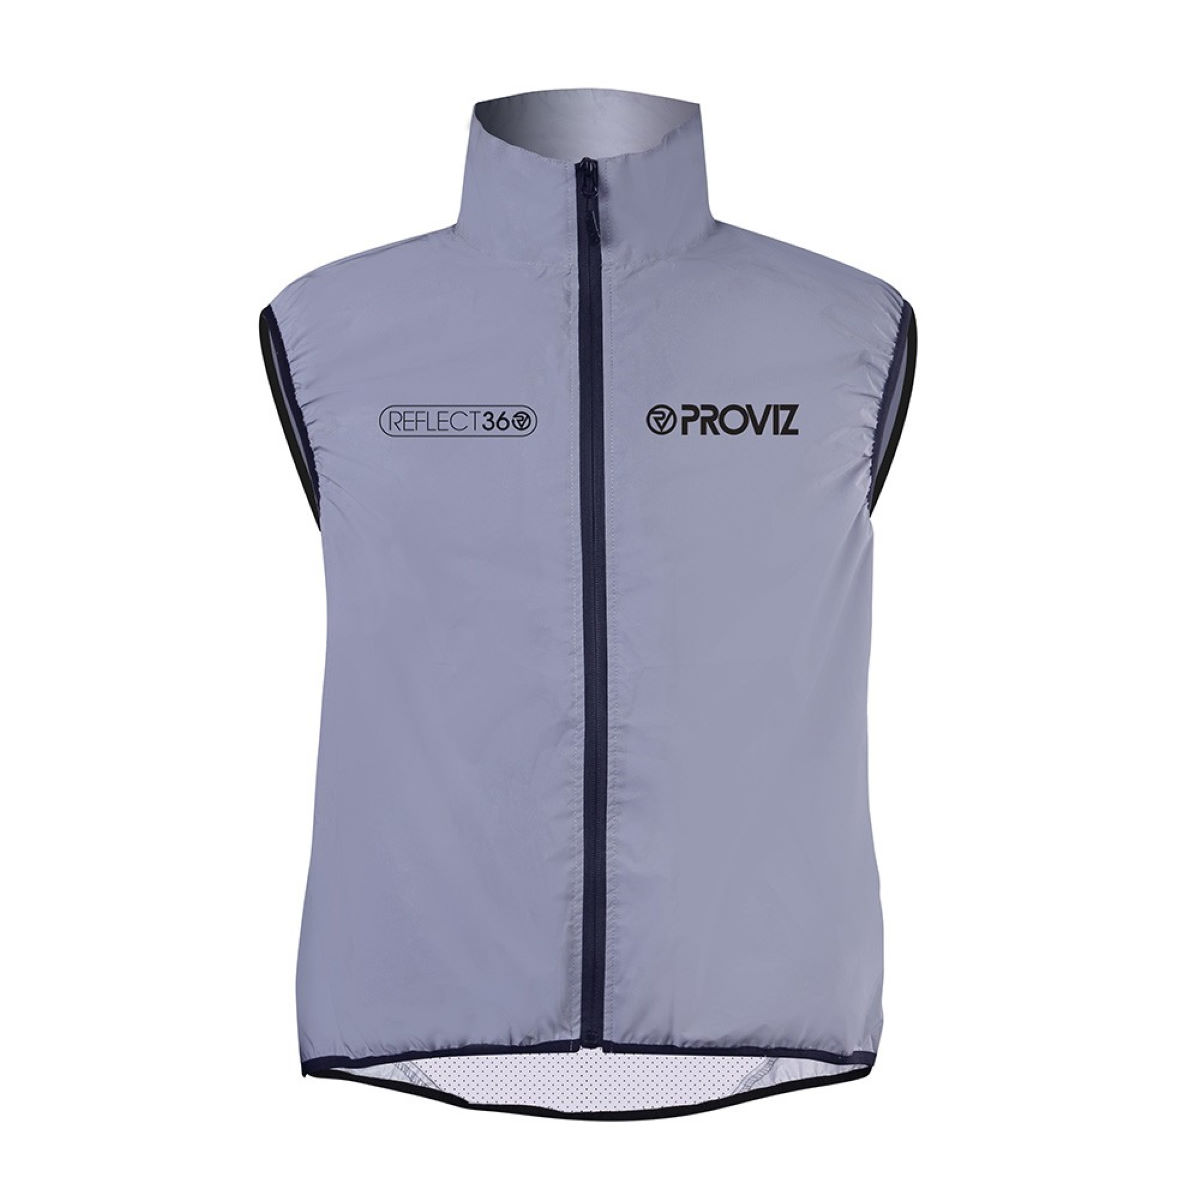 Gilet Proviz Reflect 360 (sans manches) - Small Reflective